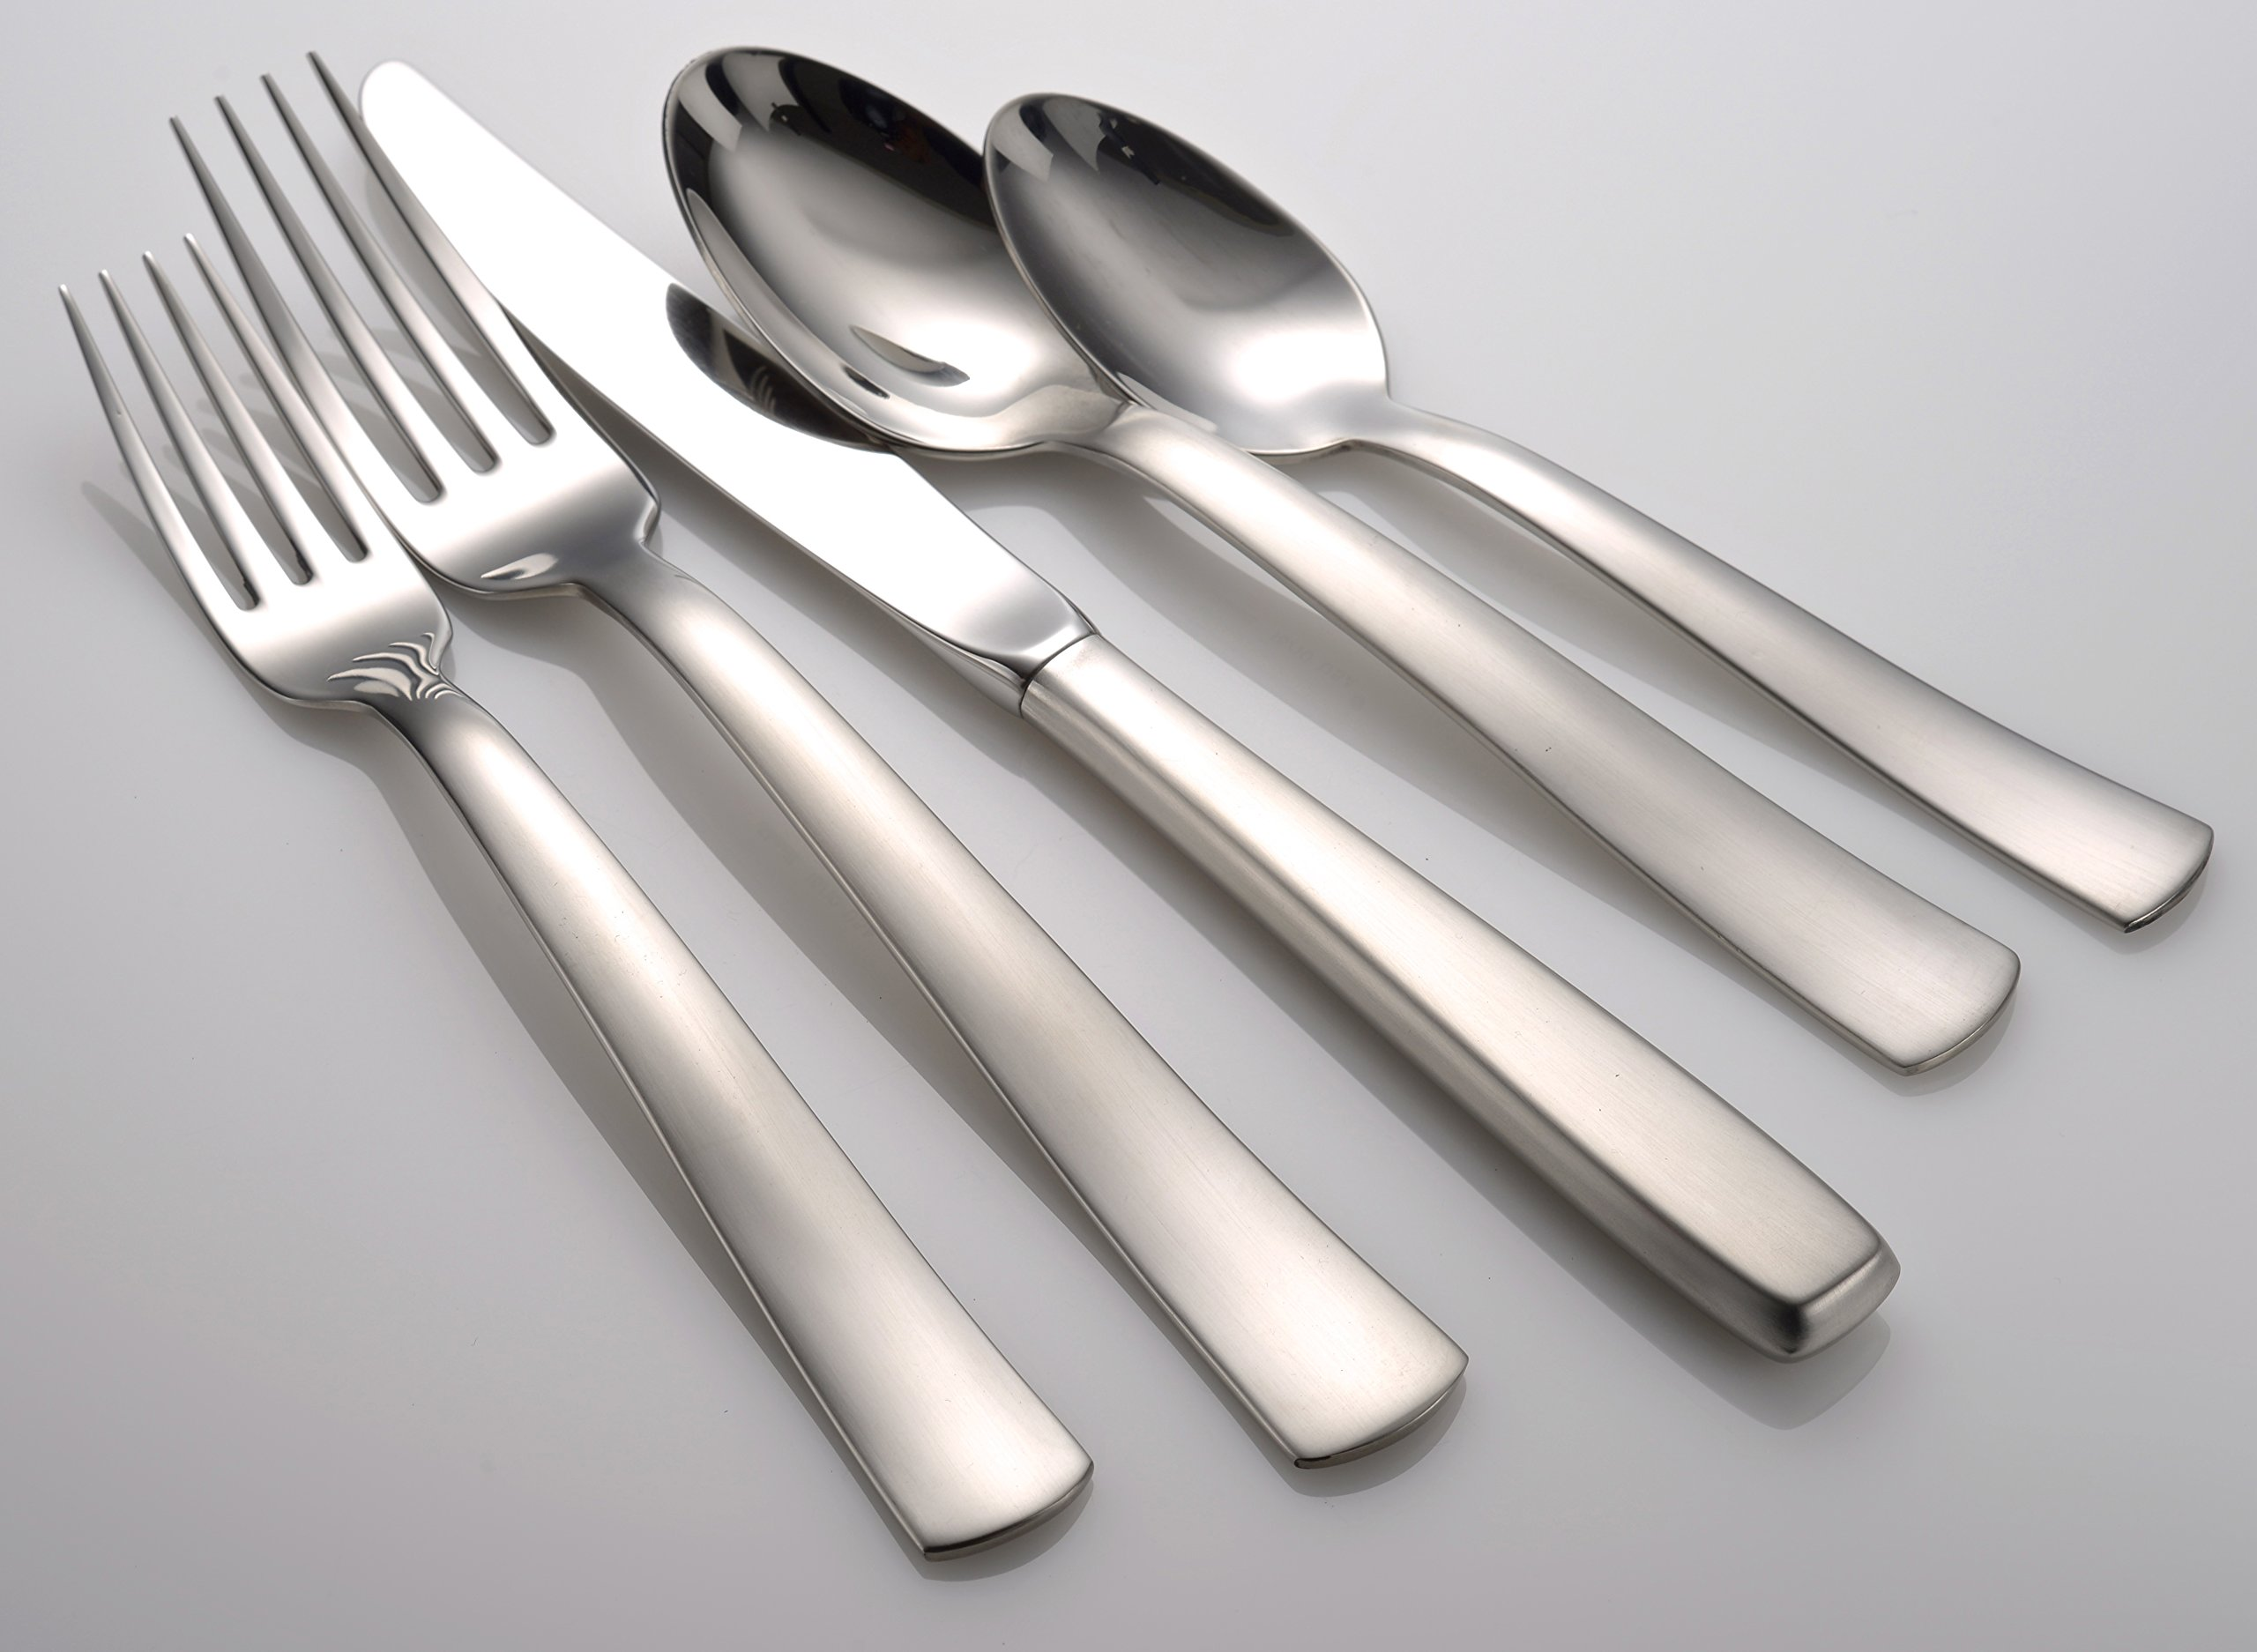 Satin America 20 Piece Set Flatware 18/10 Made in USA by Liberty Tabletop